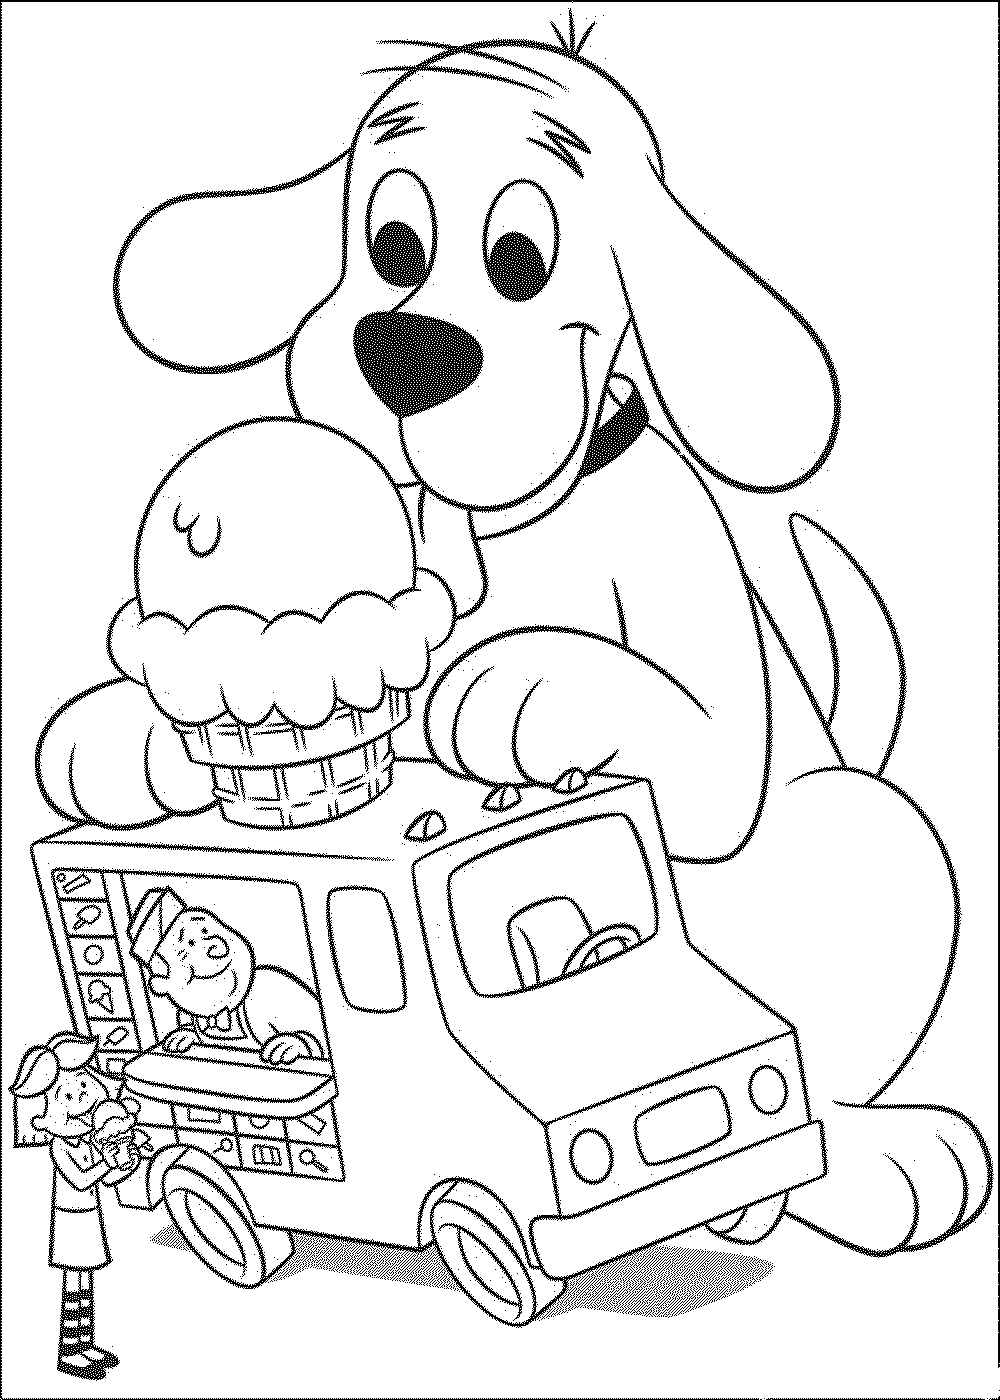 free printable dog coloring pages employ dog coloring pages for your childrens creative time printable pages free coloring dog